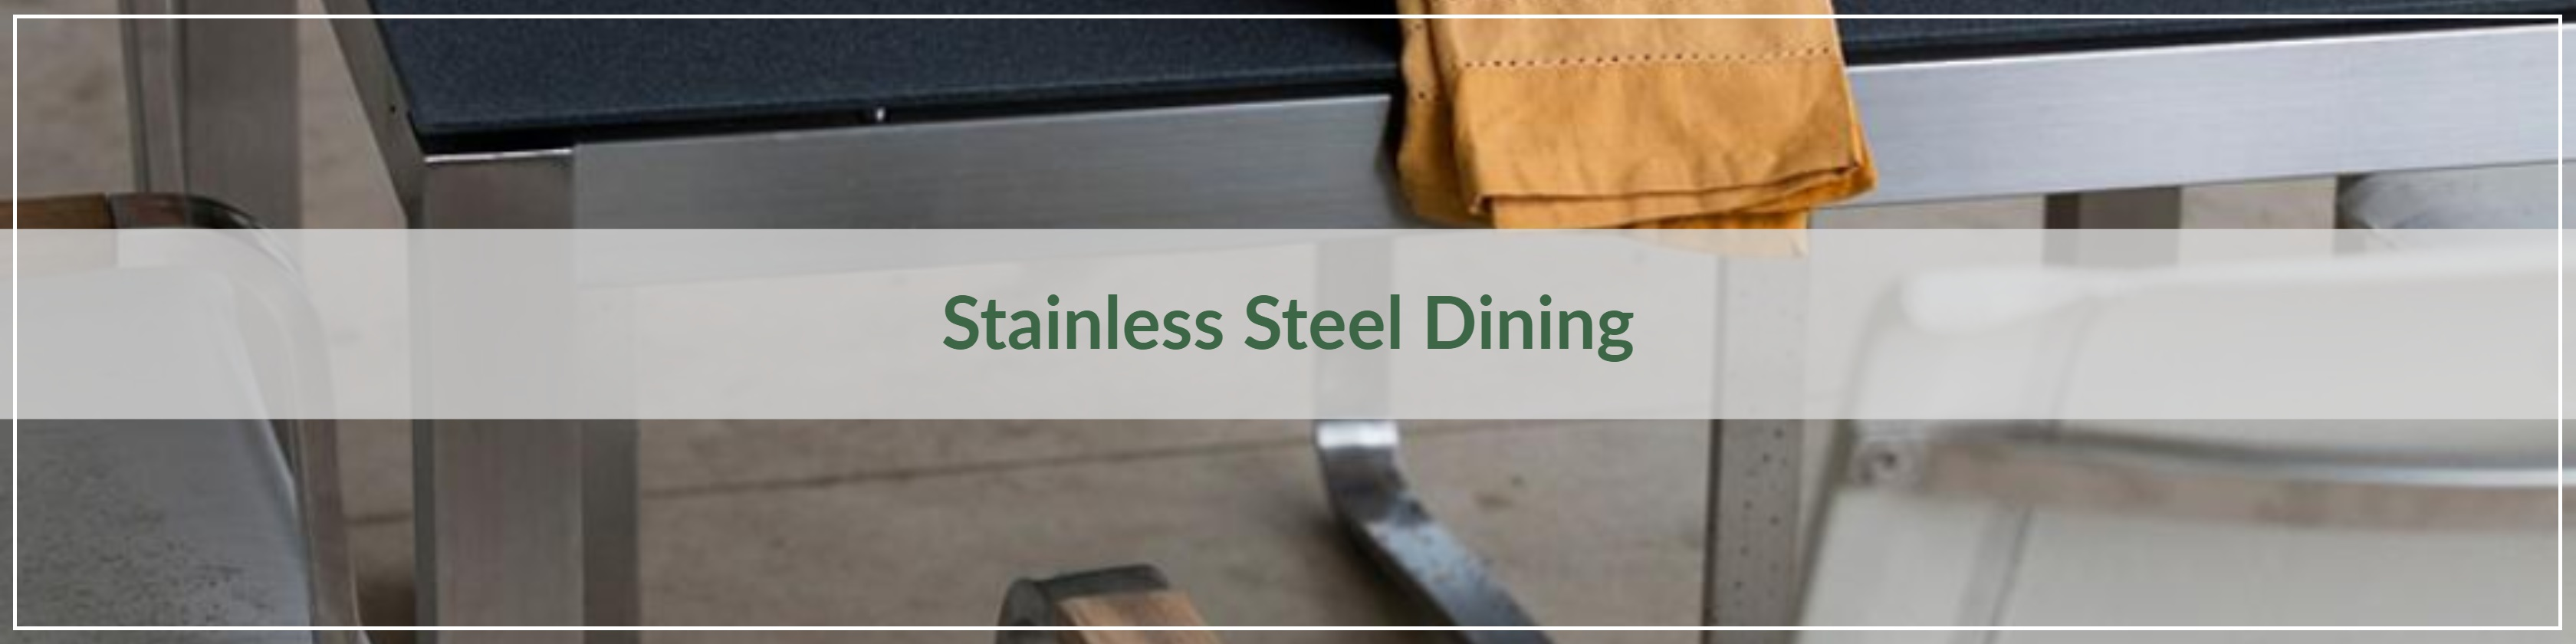 Stainless Steel Outdoor Dining